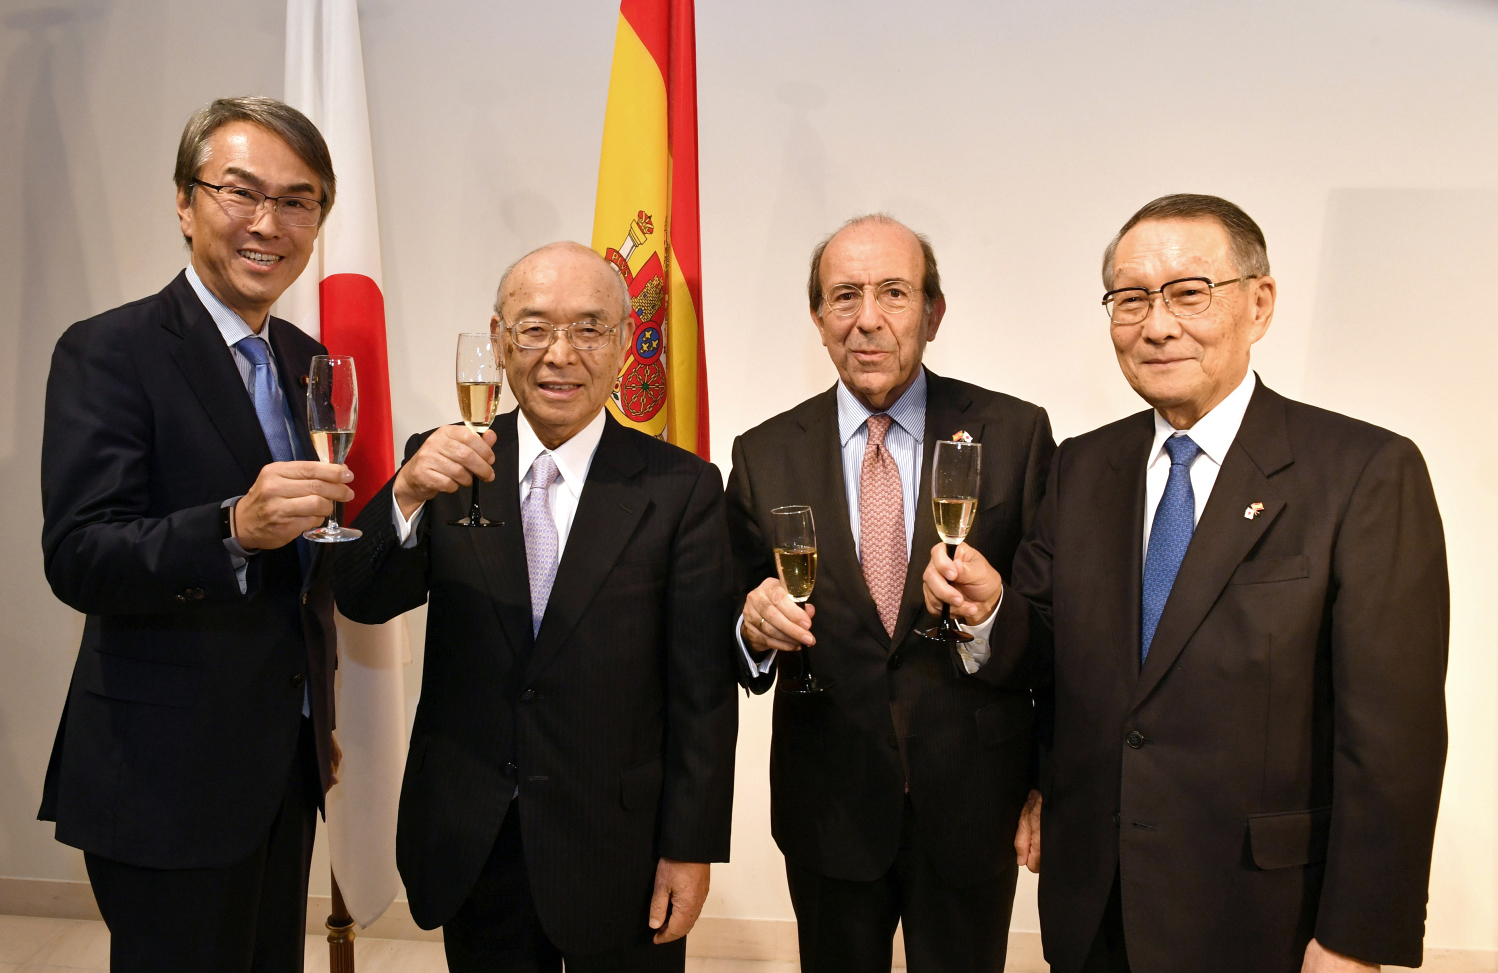 Above left: State Minister for Foreign Affairs Kazuyuki Nakane speaks during an event to celebrate the 150th anniversary of the establishment of diplomatic relations between Spain and Japan at the Spanish Embassy on Jan. 24. Above right: Spanish Ambassador Gonzalo de Benito (second from right) poses for a photo with (from left) Nobuteru Ishihara, a member of the Japan-Spain Parliamentary Friendship League; Shinichi Yokoyama, former chairman of the Board of Sumitomo Life Insurance Co. and domestic chairman of the Japan-Spain Symposium; and Mikio Sasaki, senior corporate adviser of Mitsubishi Corp. and chairman of the Japan-Spain Business Cooperation Committee. | YOSHIAKI MIURA, COURTESY OF THE SPANISH EMBASSY